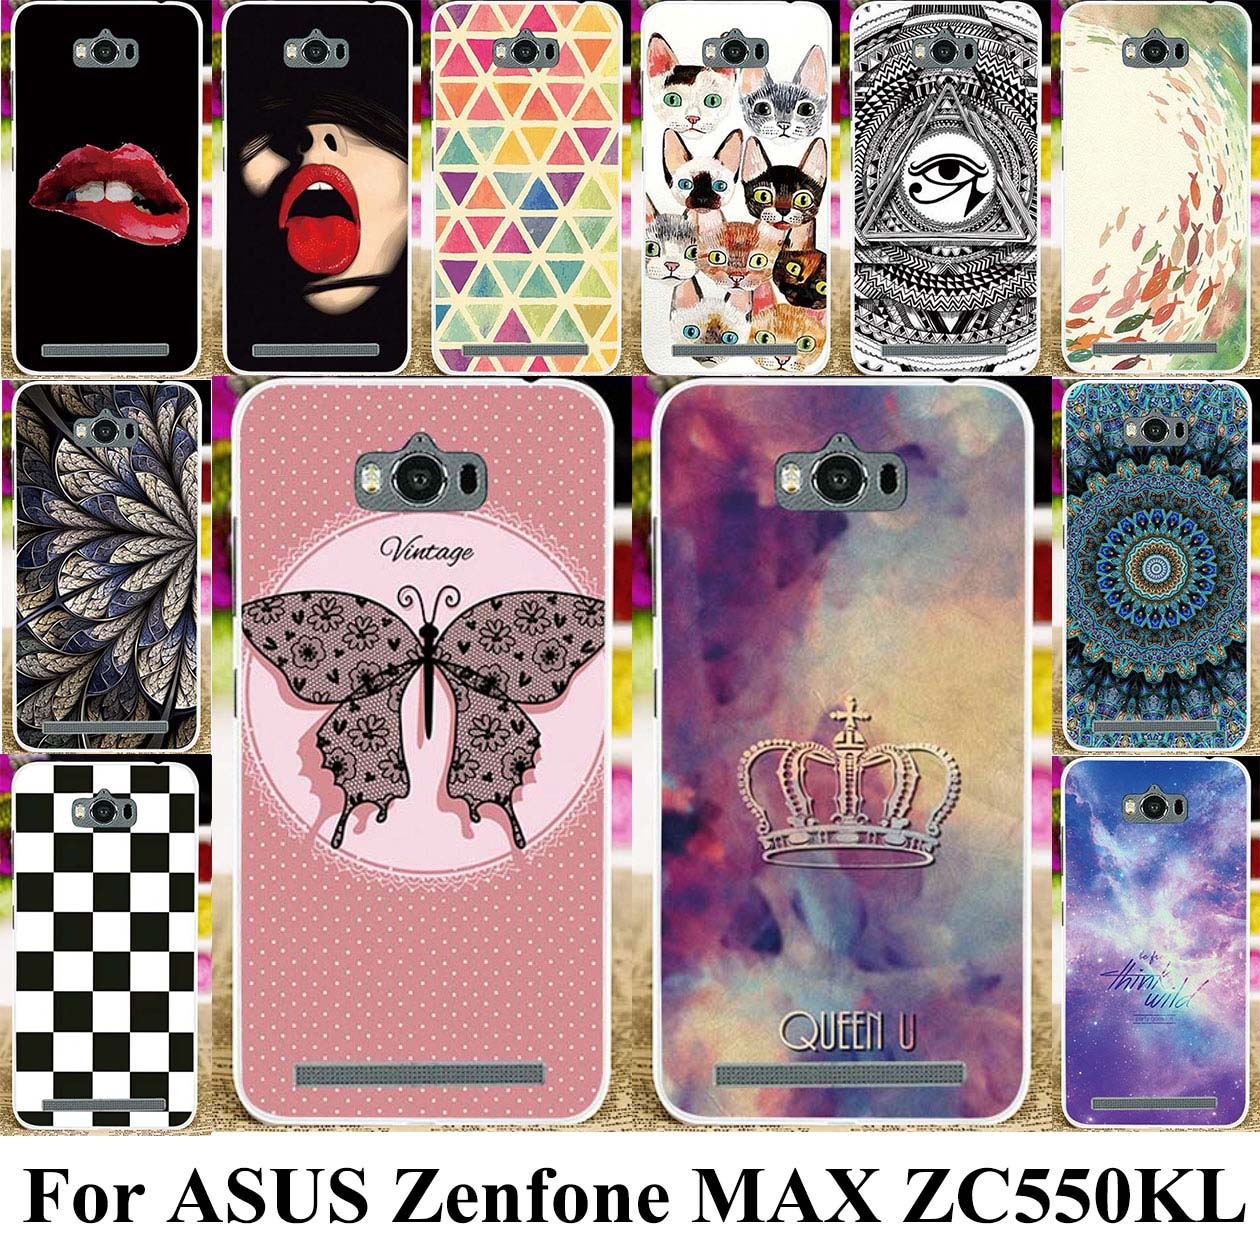 Silicone Mobile Phone Cover Case For <font><b>ASUS</b></font> <font><b>Zenfone</b></font> MAX <font><b>ASUS</b></font>_<font><b>Z010DD</b></font> Bag Shell Case Z010D ZC550KL Z010DA 5.5 inch image